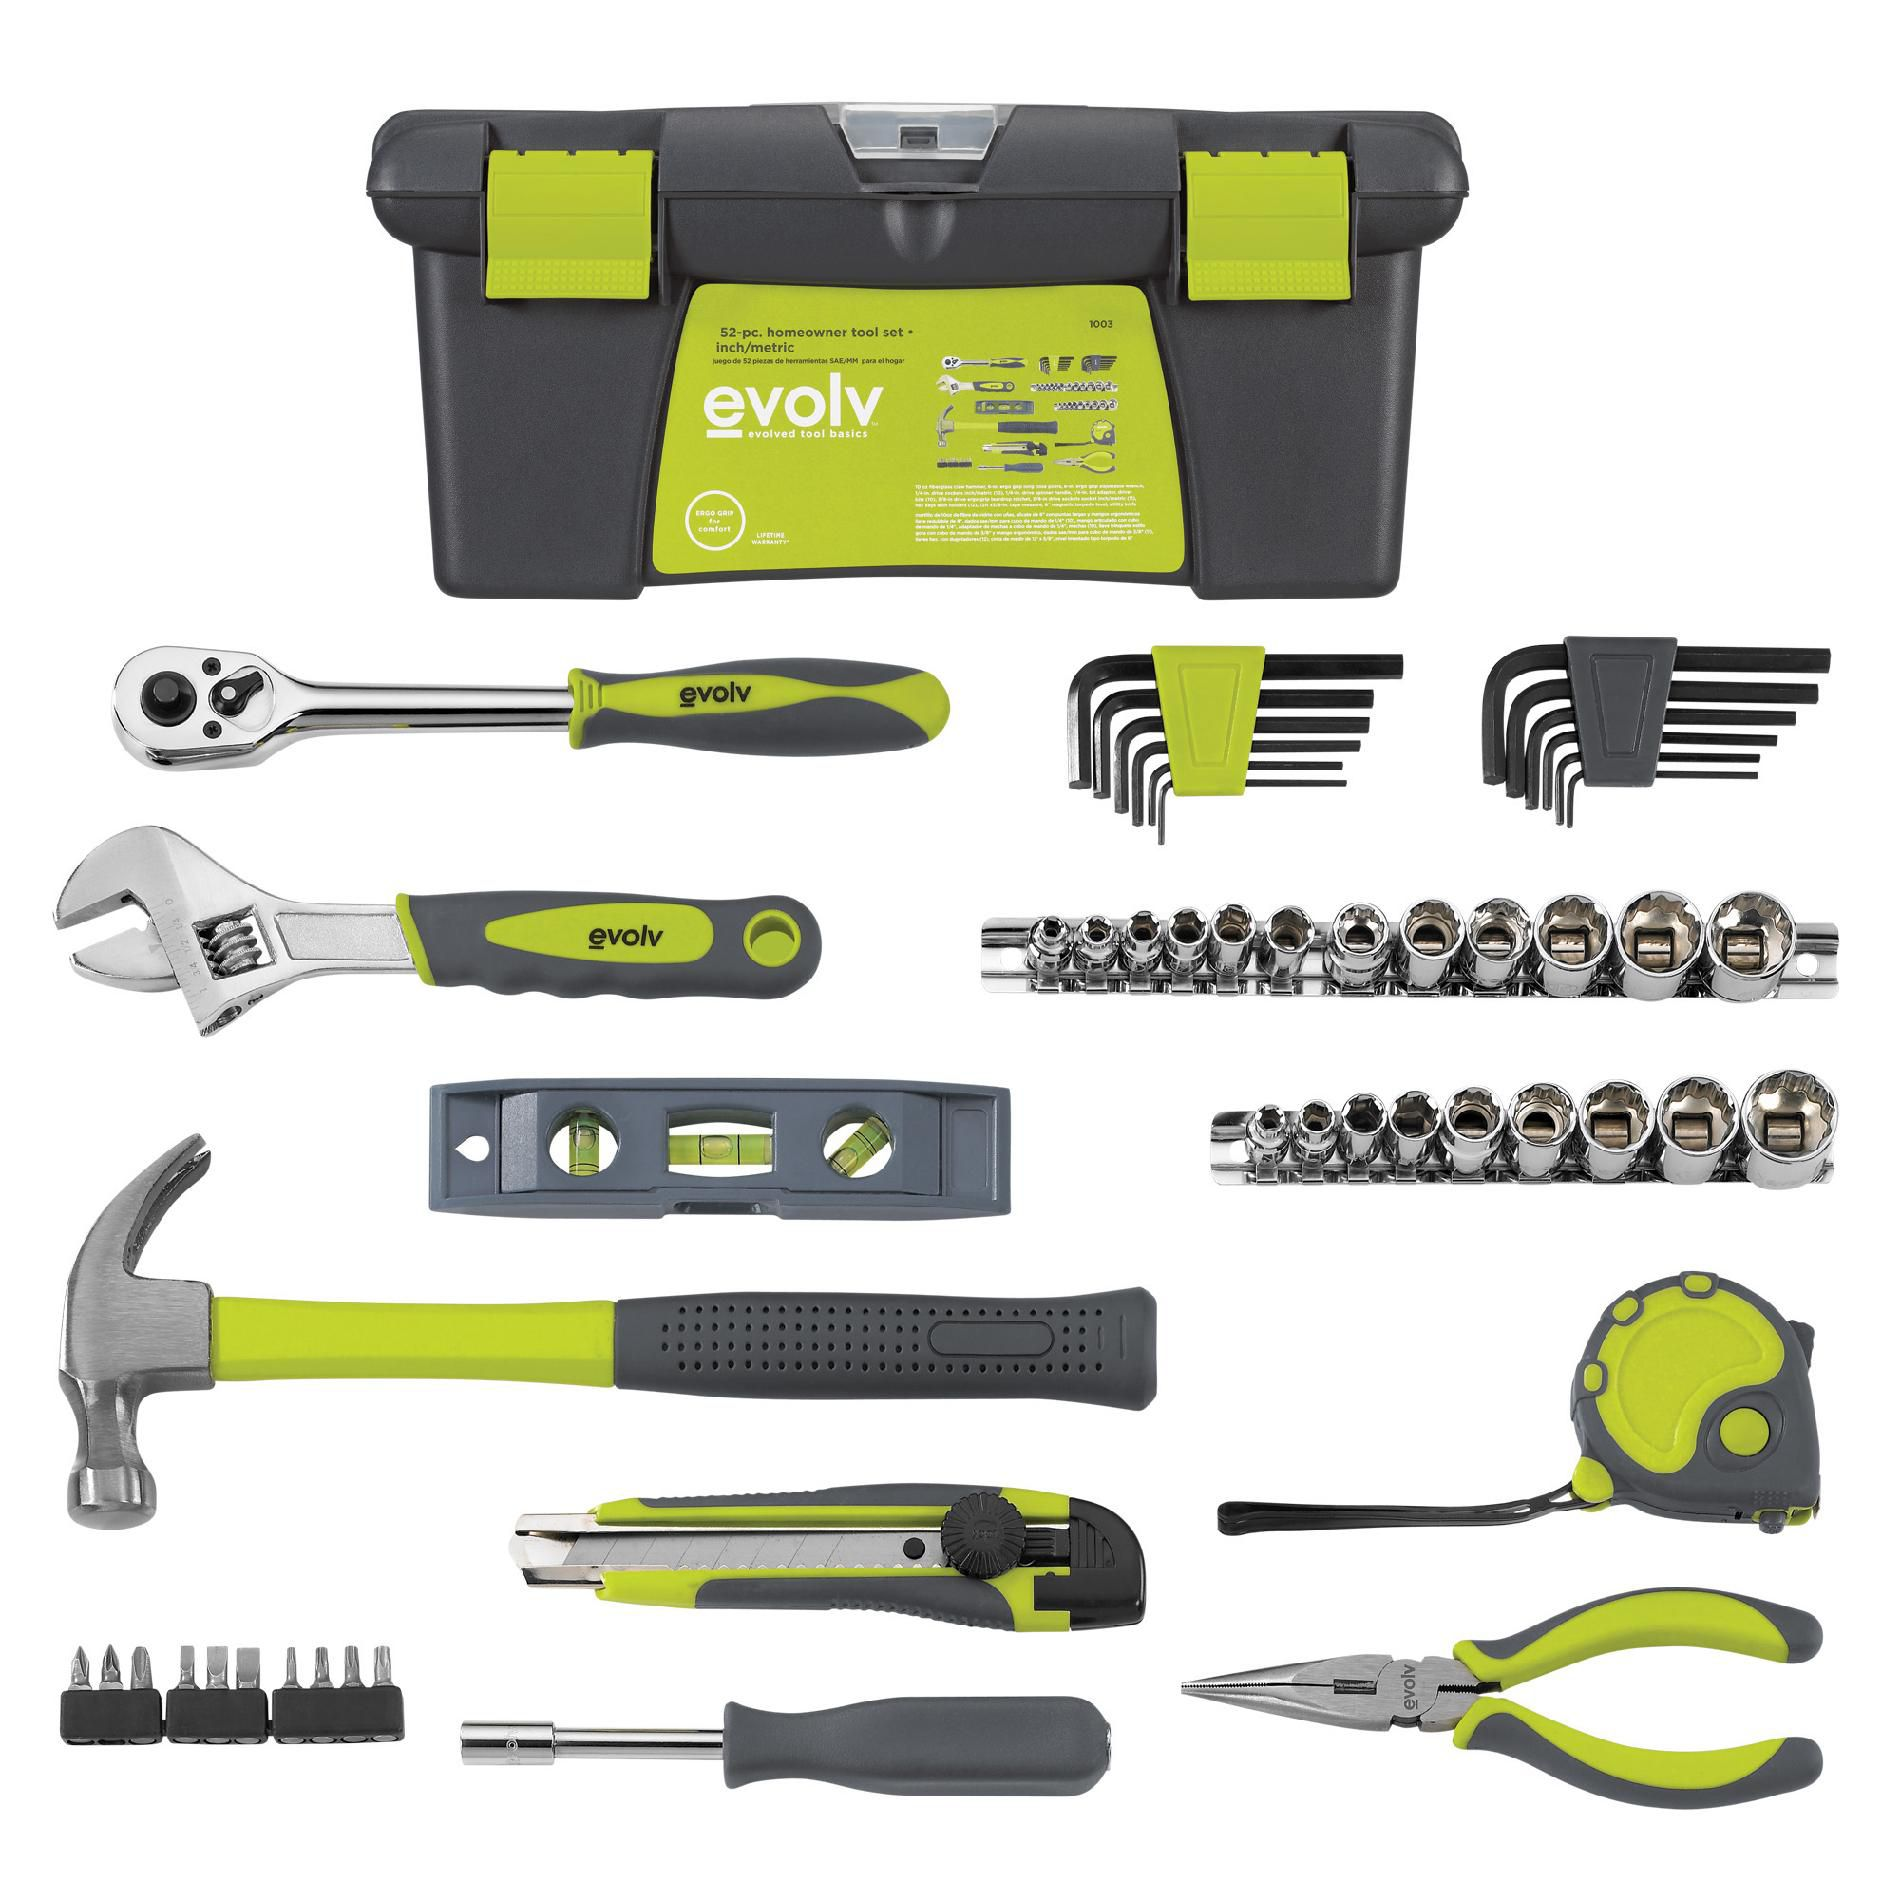 52 pc. Homeowner Tool Set                                                                                                        at mygofer.com